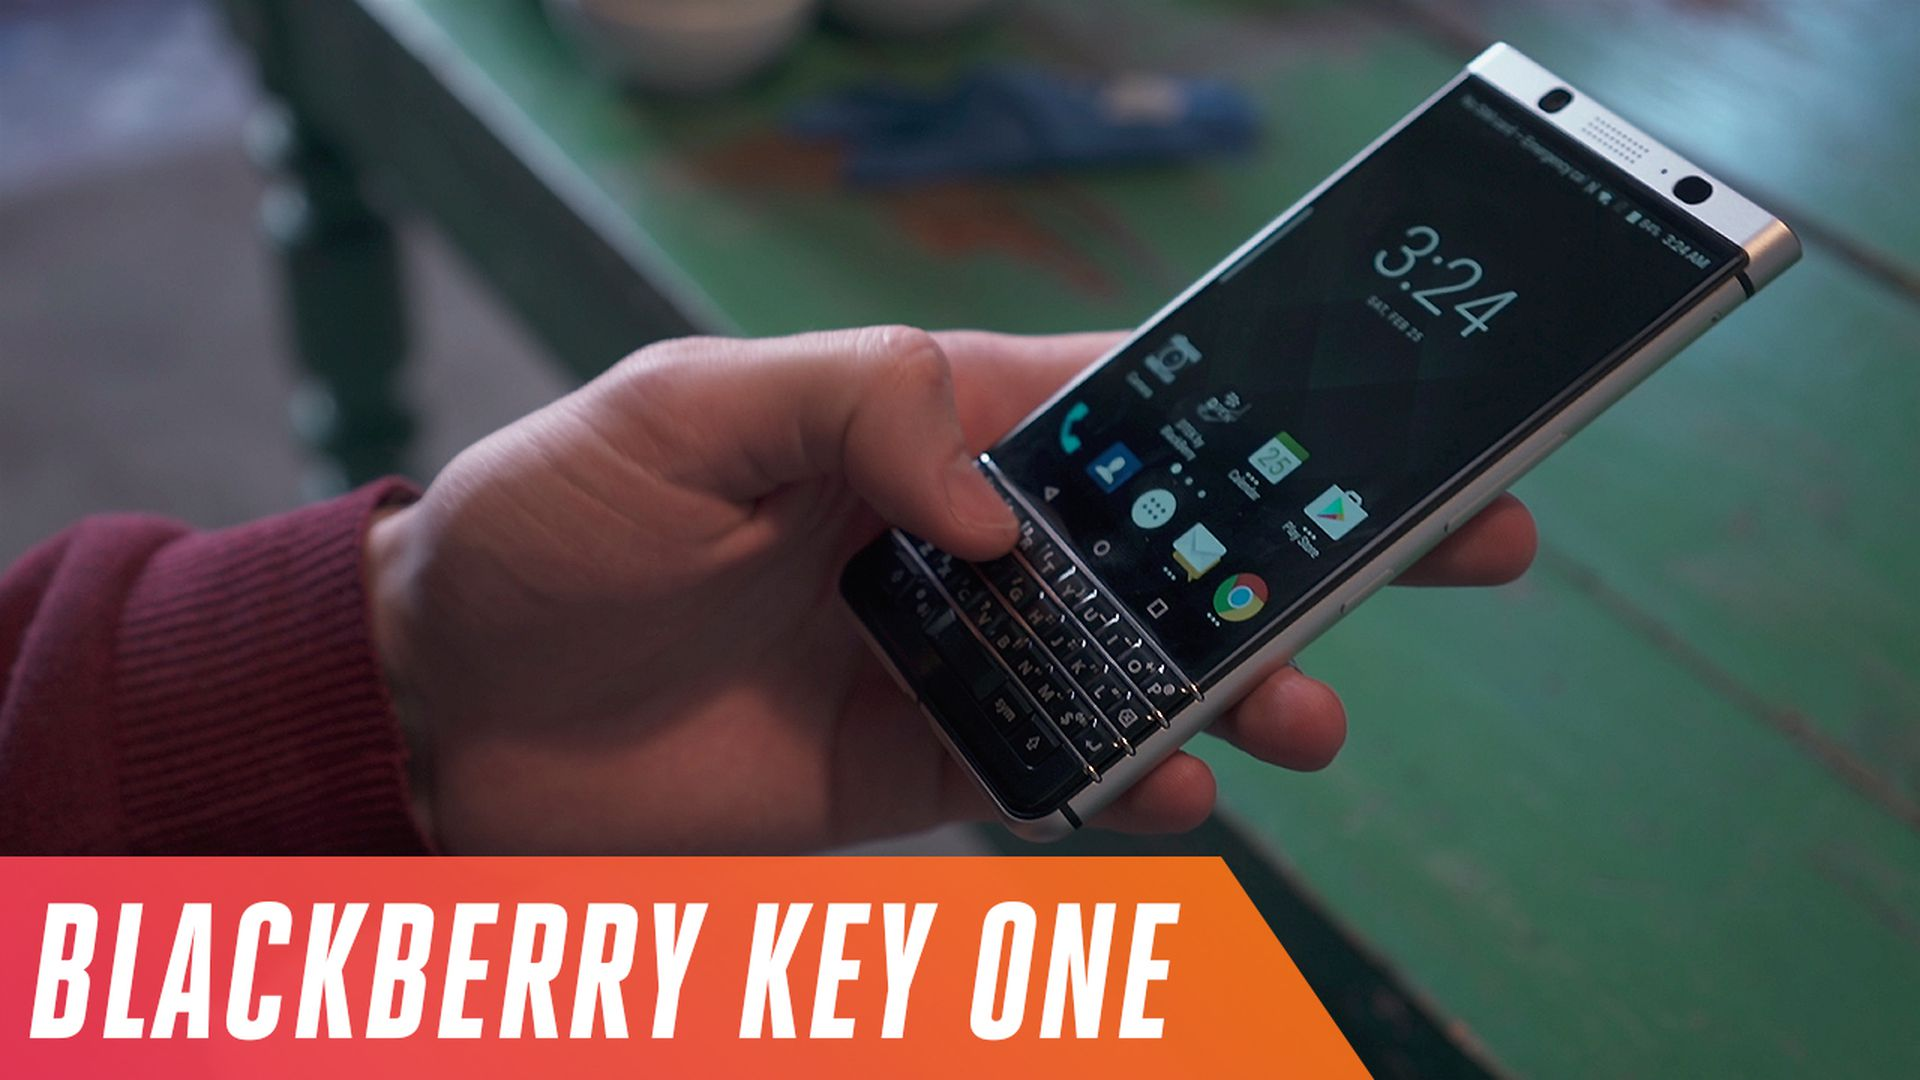 VRG_VHO_609_Blackberry_Key_One_Thumb Cozy Blackberry Z10 Mit Bmw Verbinden Cars Trend